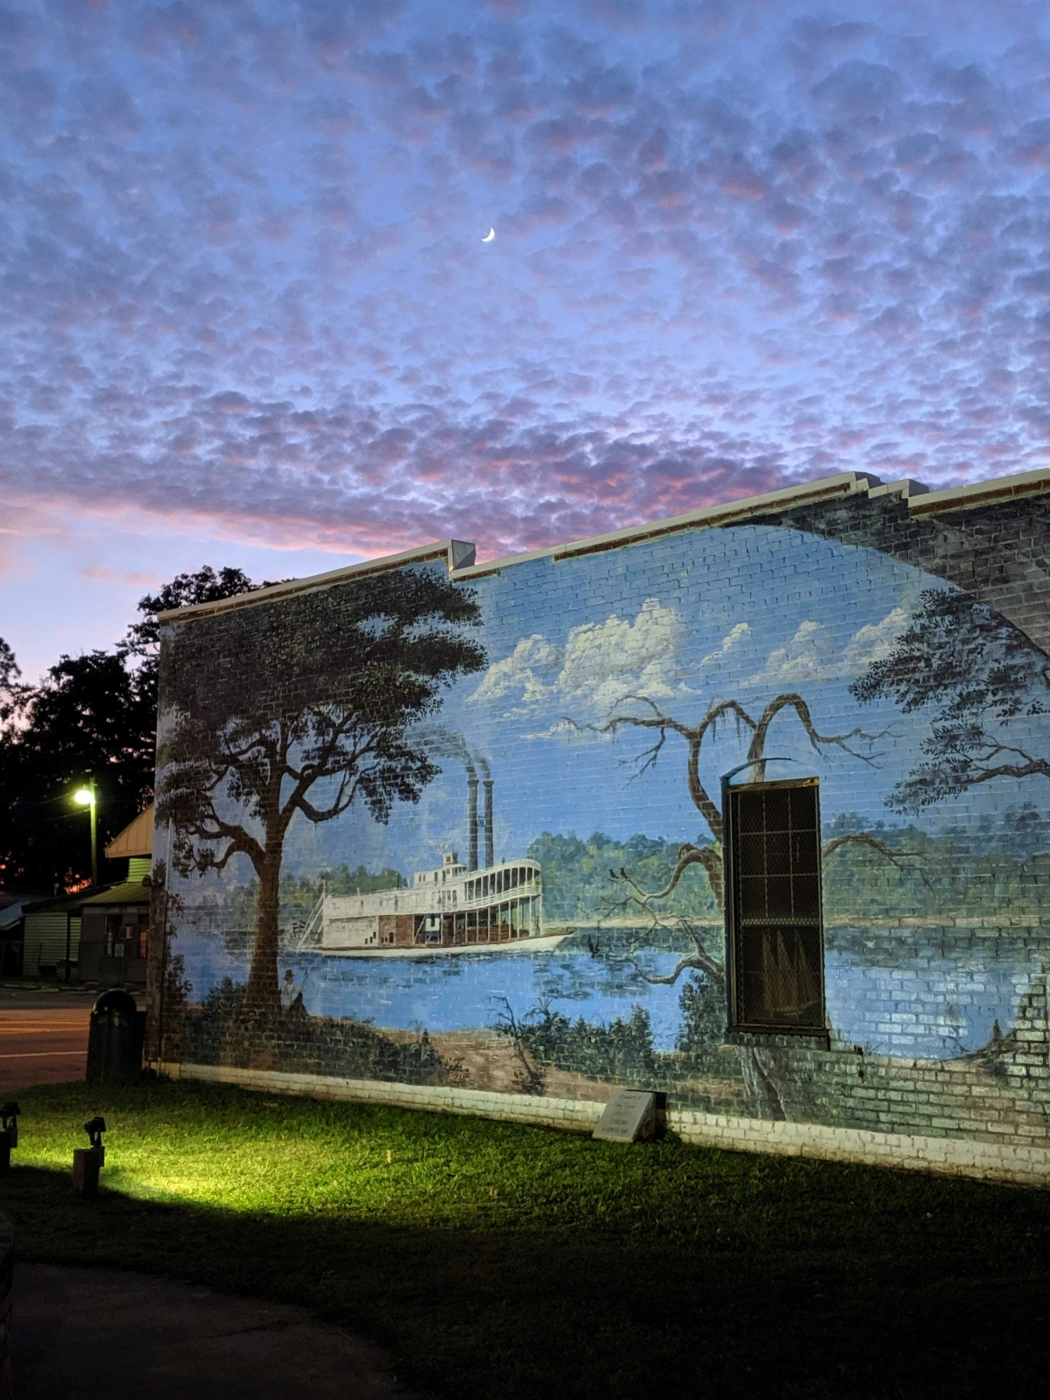 Image of the Chattahoochee Mural painting of a steamboat.